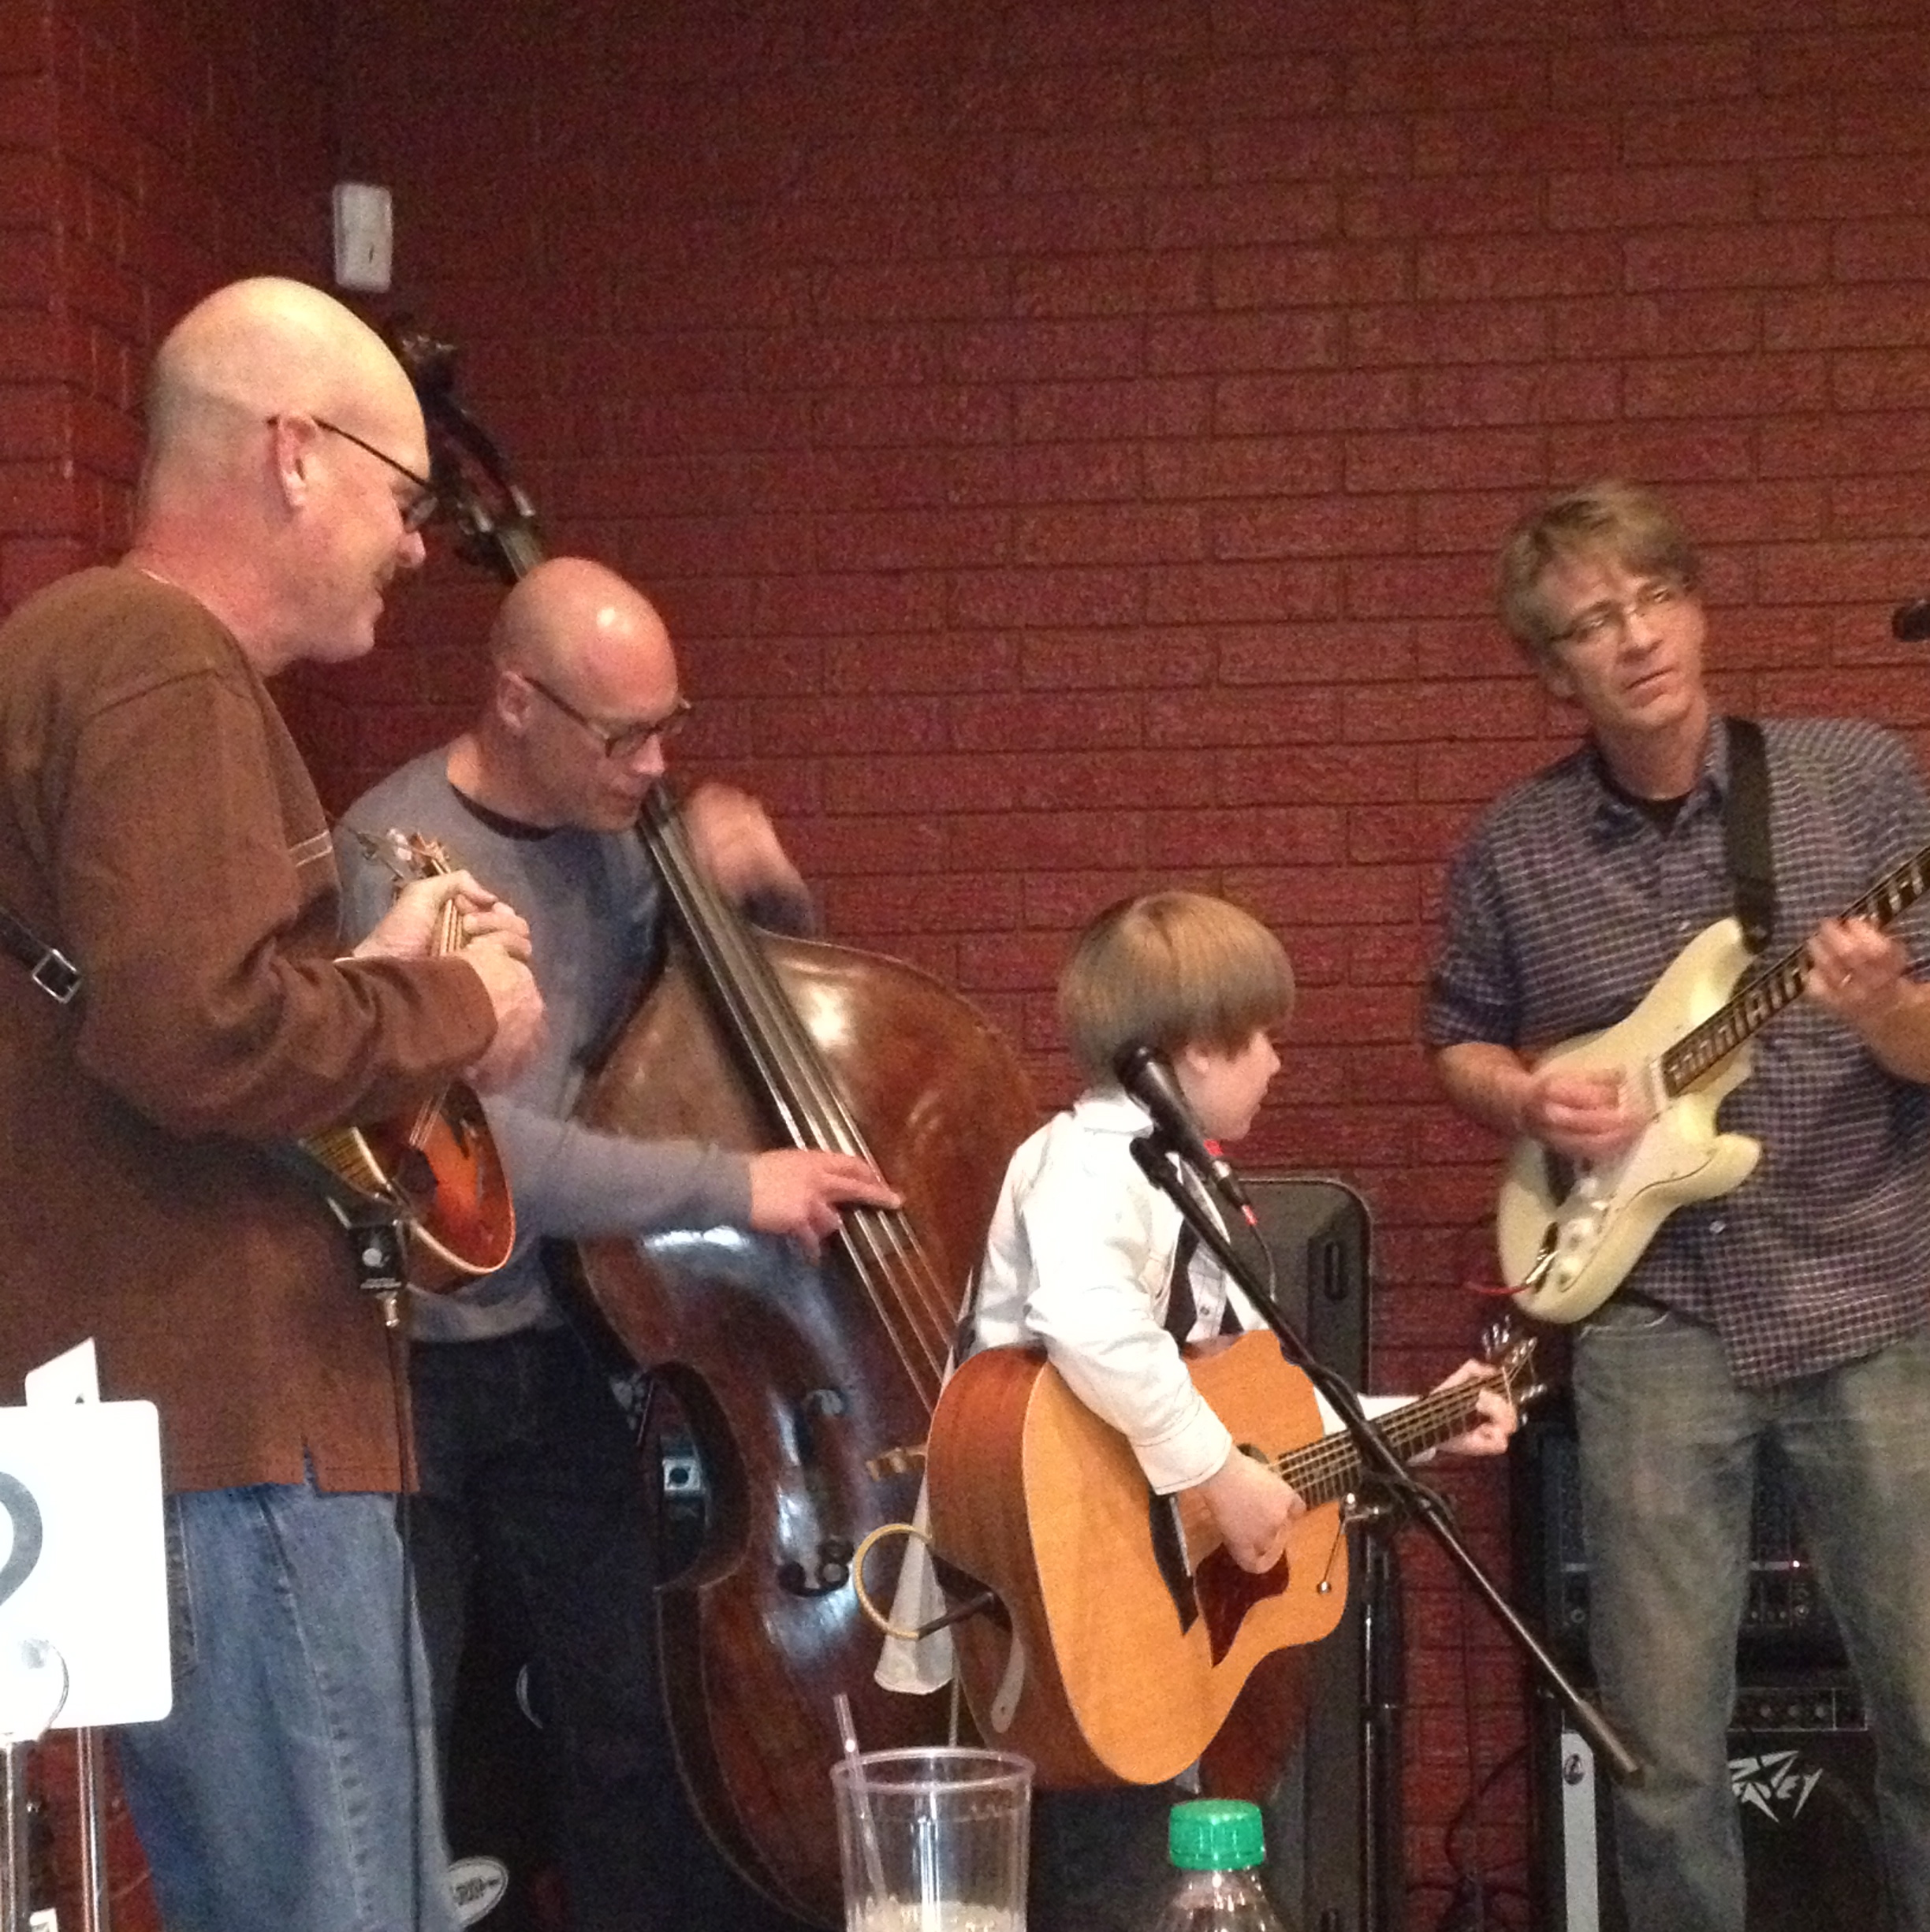 A great time with great musicians at Tanya's Soup Kitchen